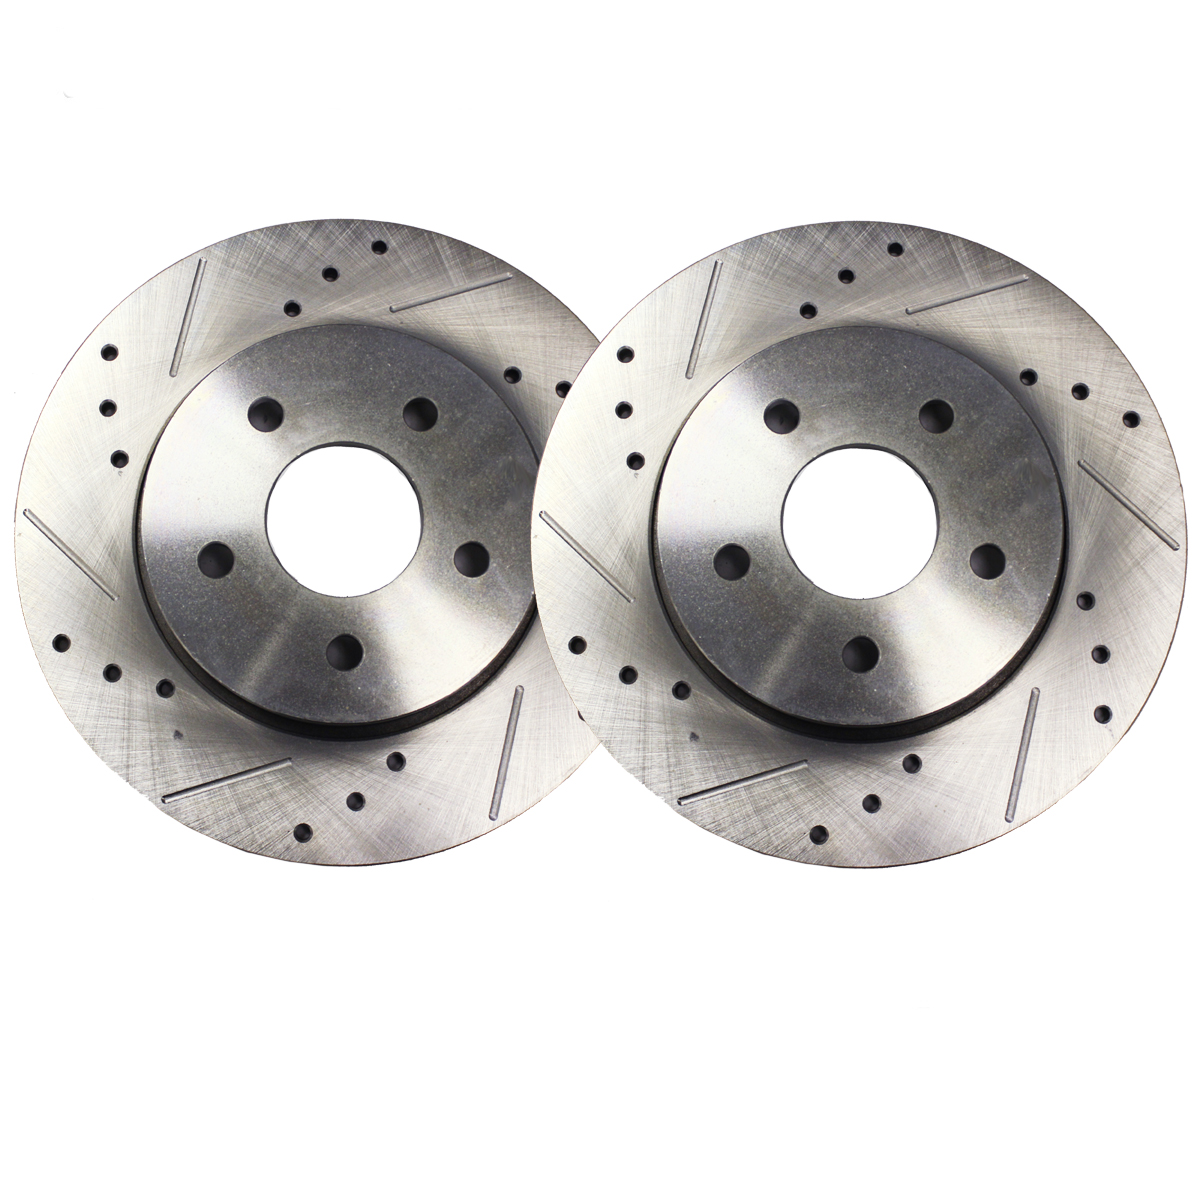 Front Drilled and Slotted Disc Brake Rotors #S-54126- Ford & Mercury